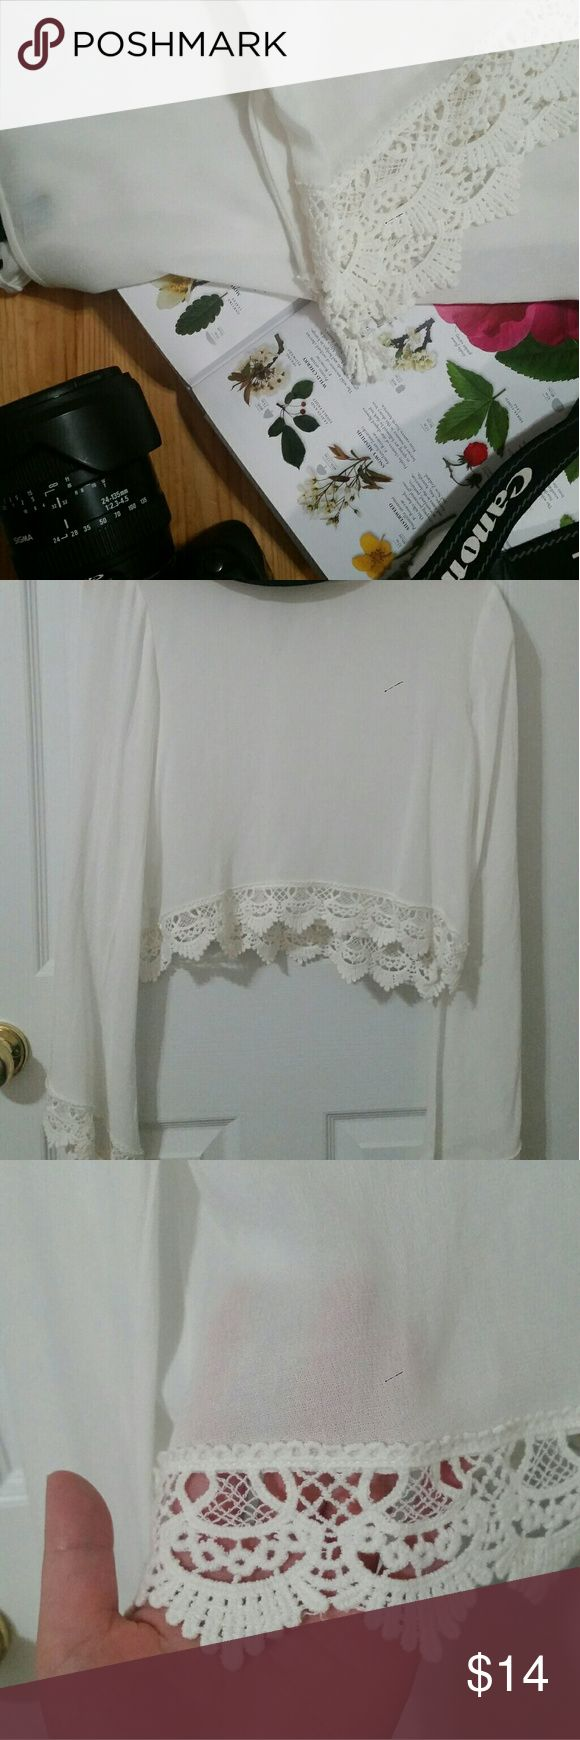 Forever 21: Bell Sleeve Lace Trim Crop Top Cropped, white, bell sleeve, flowy top. Semi sheer, no tag but never worn. Great to put over a swim top/bralette or to pair with a wide brim hat and some light blue shorts! They could also be worn during festivals as well. Forever 21 Tops